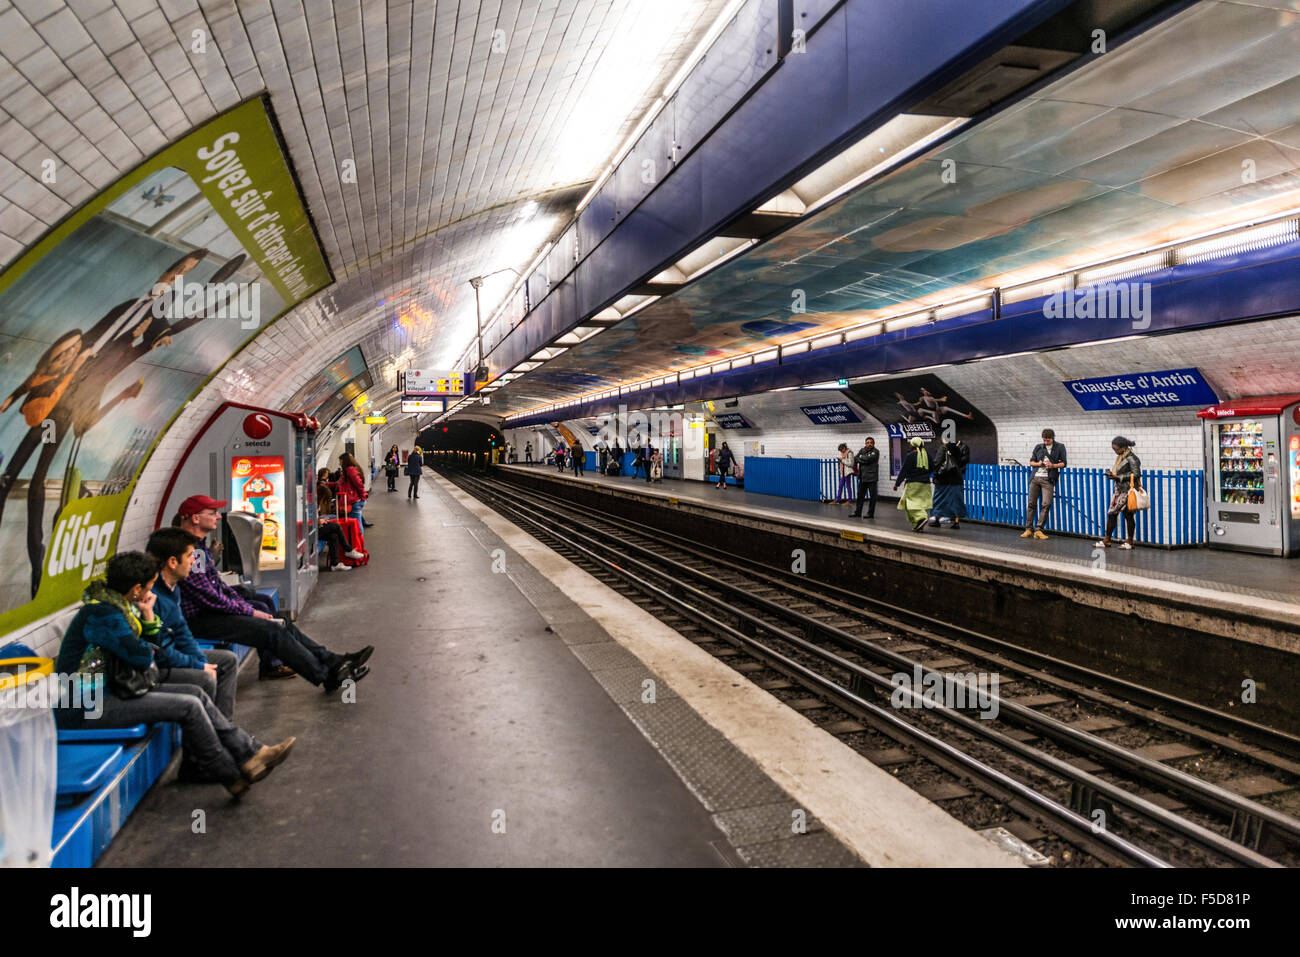 chaussee d 39 antin la fayette metro station people waiting for metro stock photo royalty free. Black Bedroom Furniture Sets. Home Design Ideas